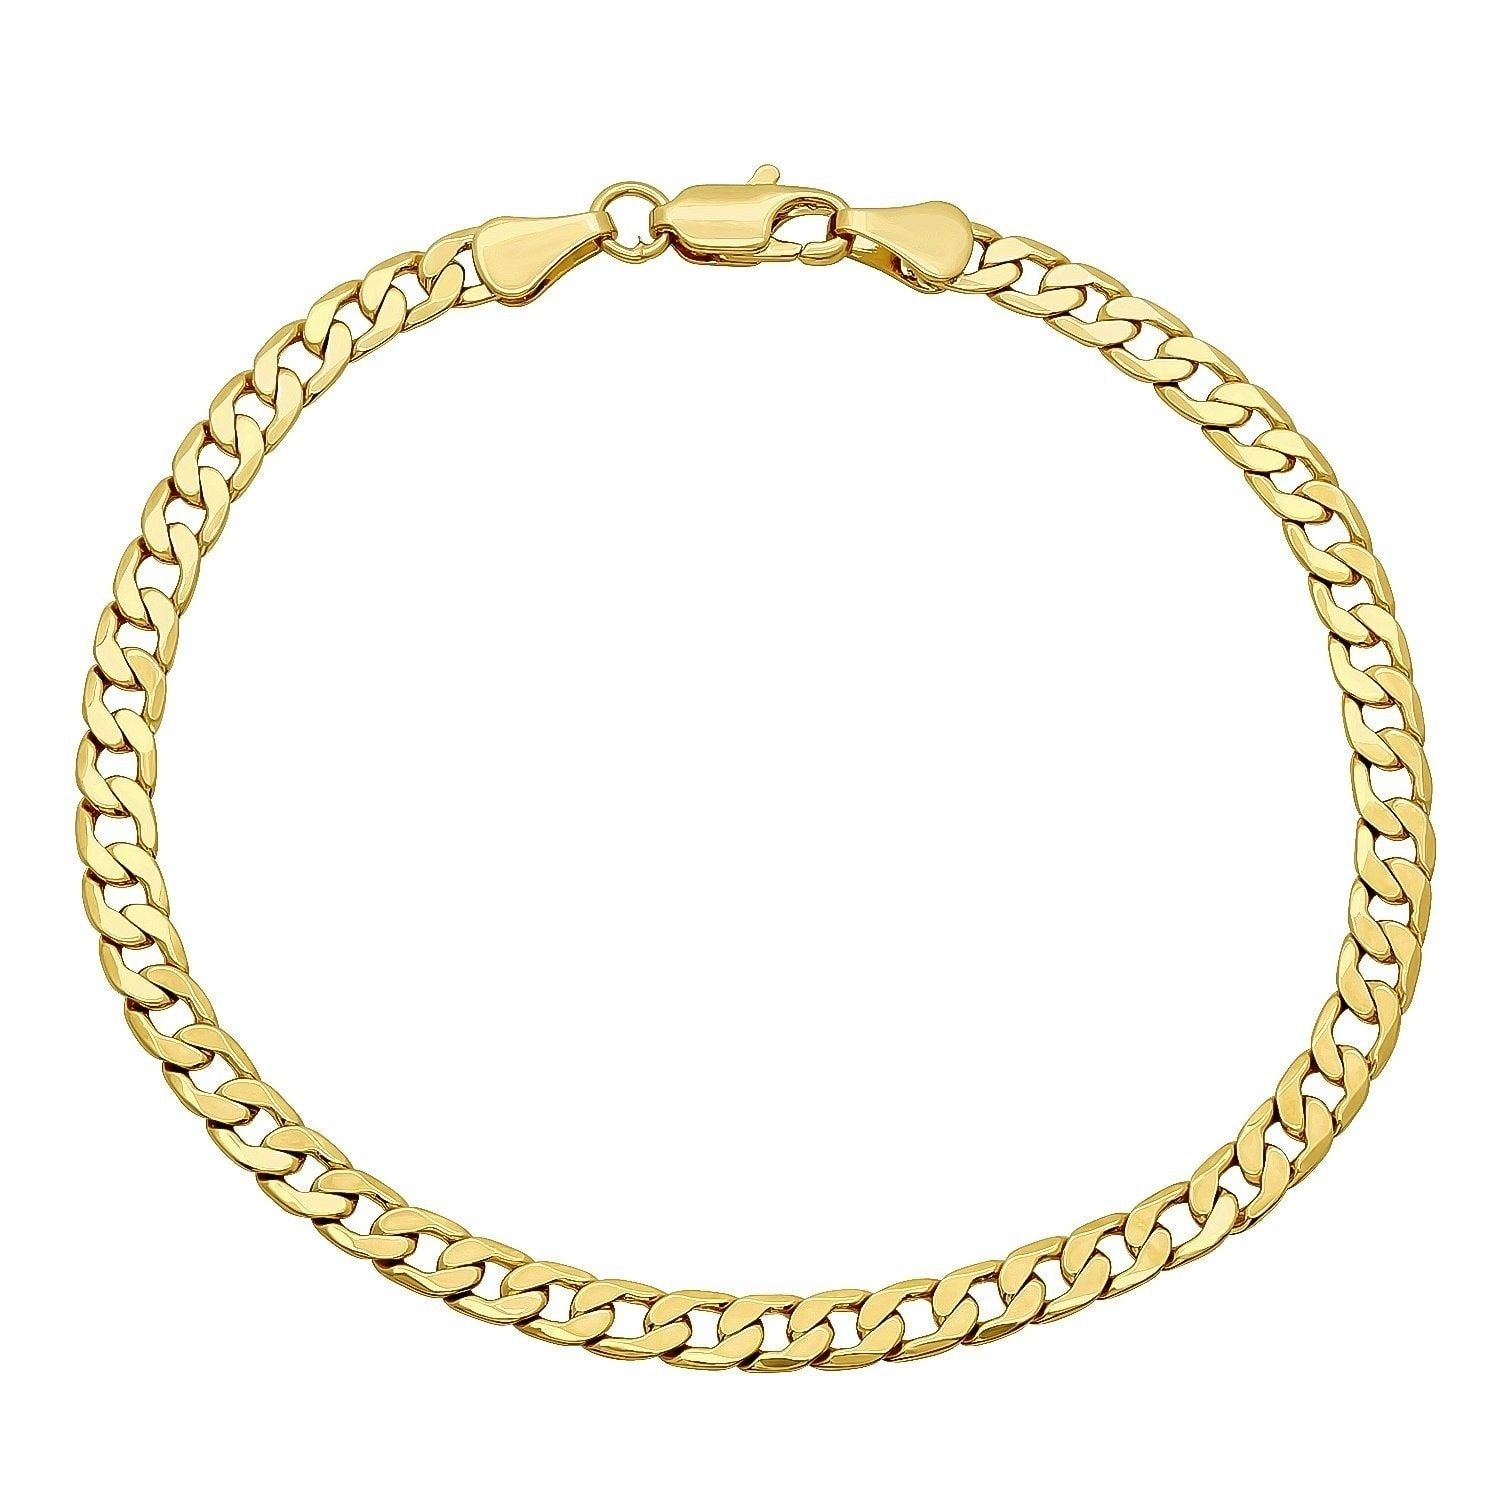 white link unusual gold collections necklace products chains jewellery chain deco vintage art watch